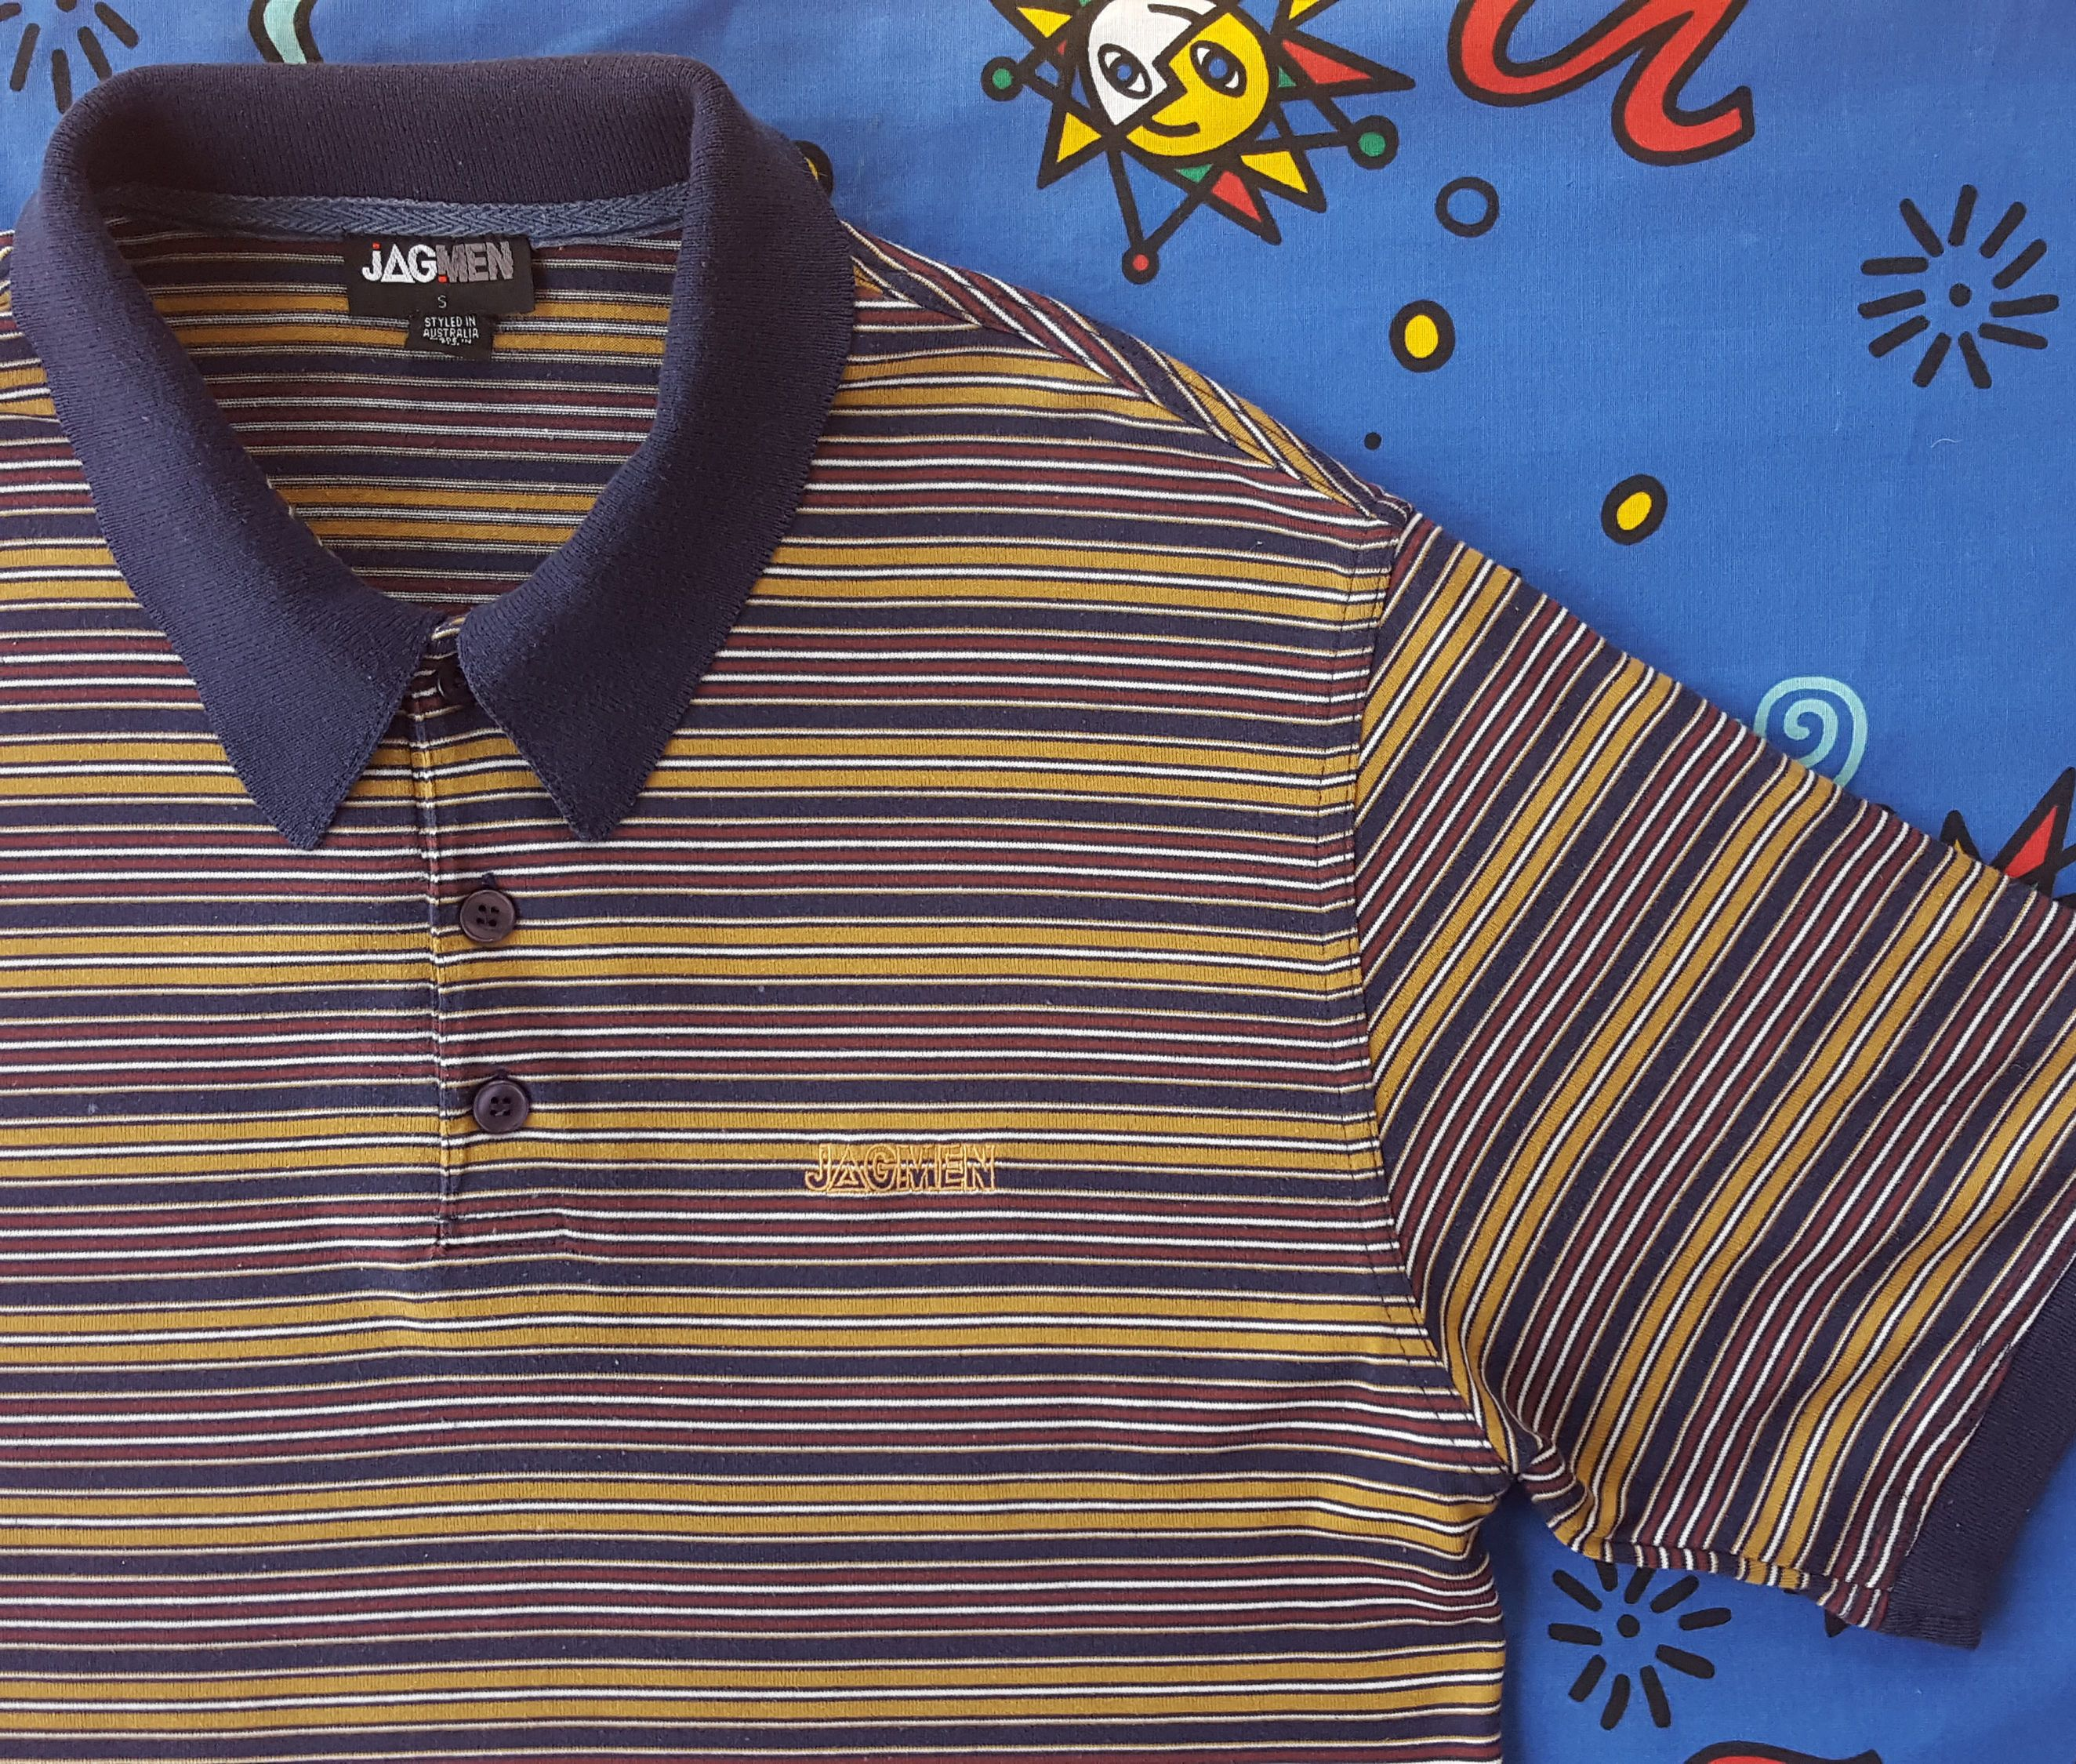 2ee72060a840 90s Striped JAG MEN Polo Shirt / Grunge / Short Sleeve / Guess ASAP Style /